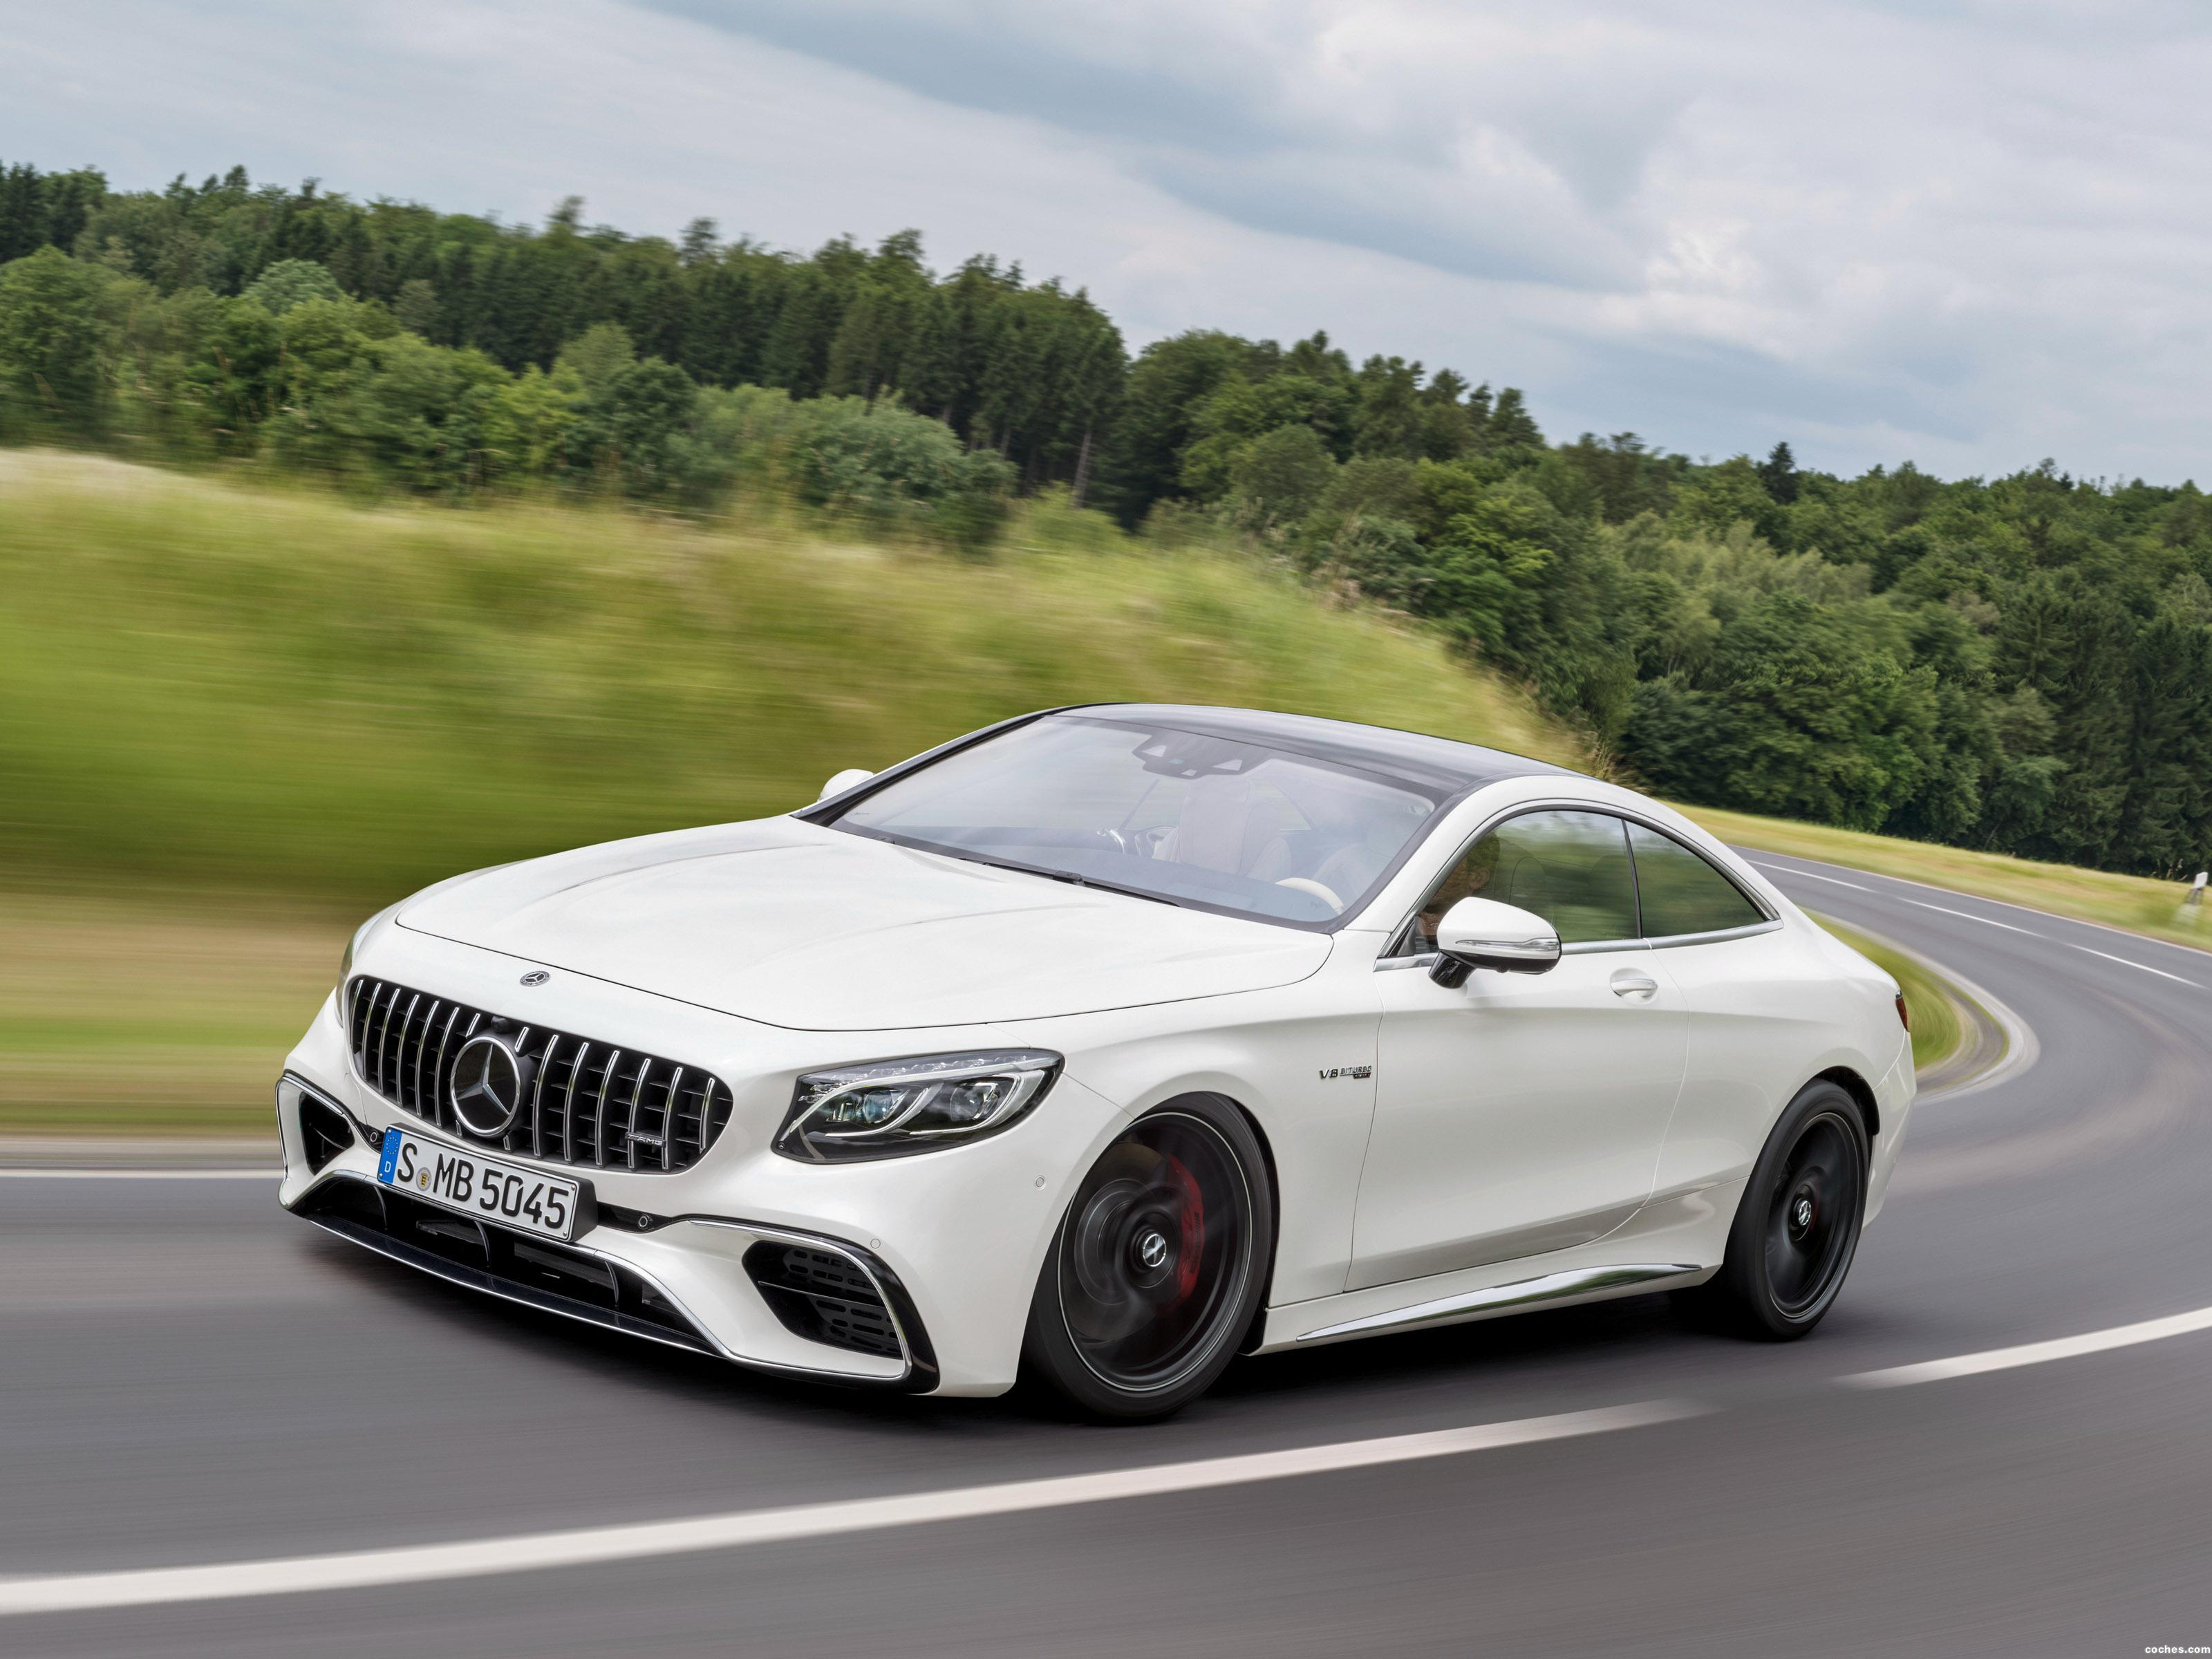 Foto 0 de Mercedes AMG S63 4MATIC Coupe C217 2018